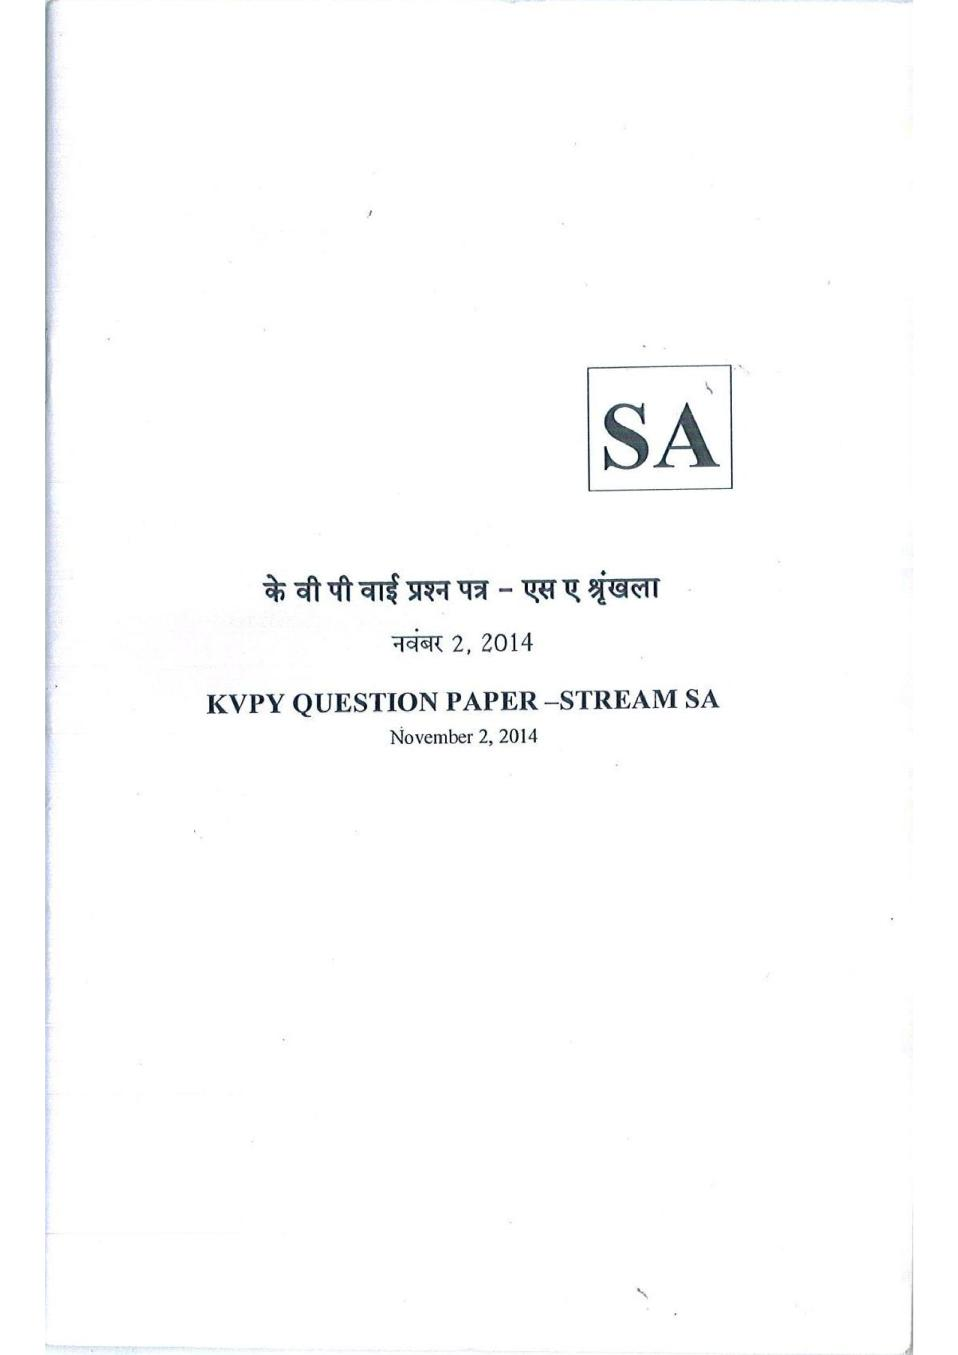 KVPY 2014 Question Paper & Answer Key for SA Stream (Hindi Version)